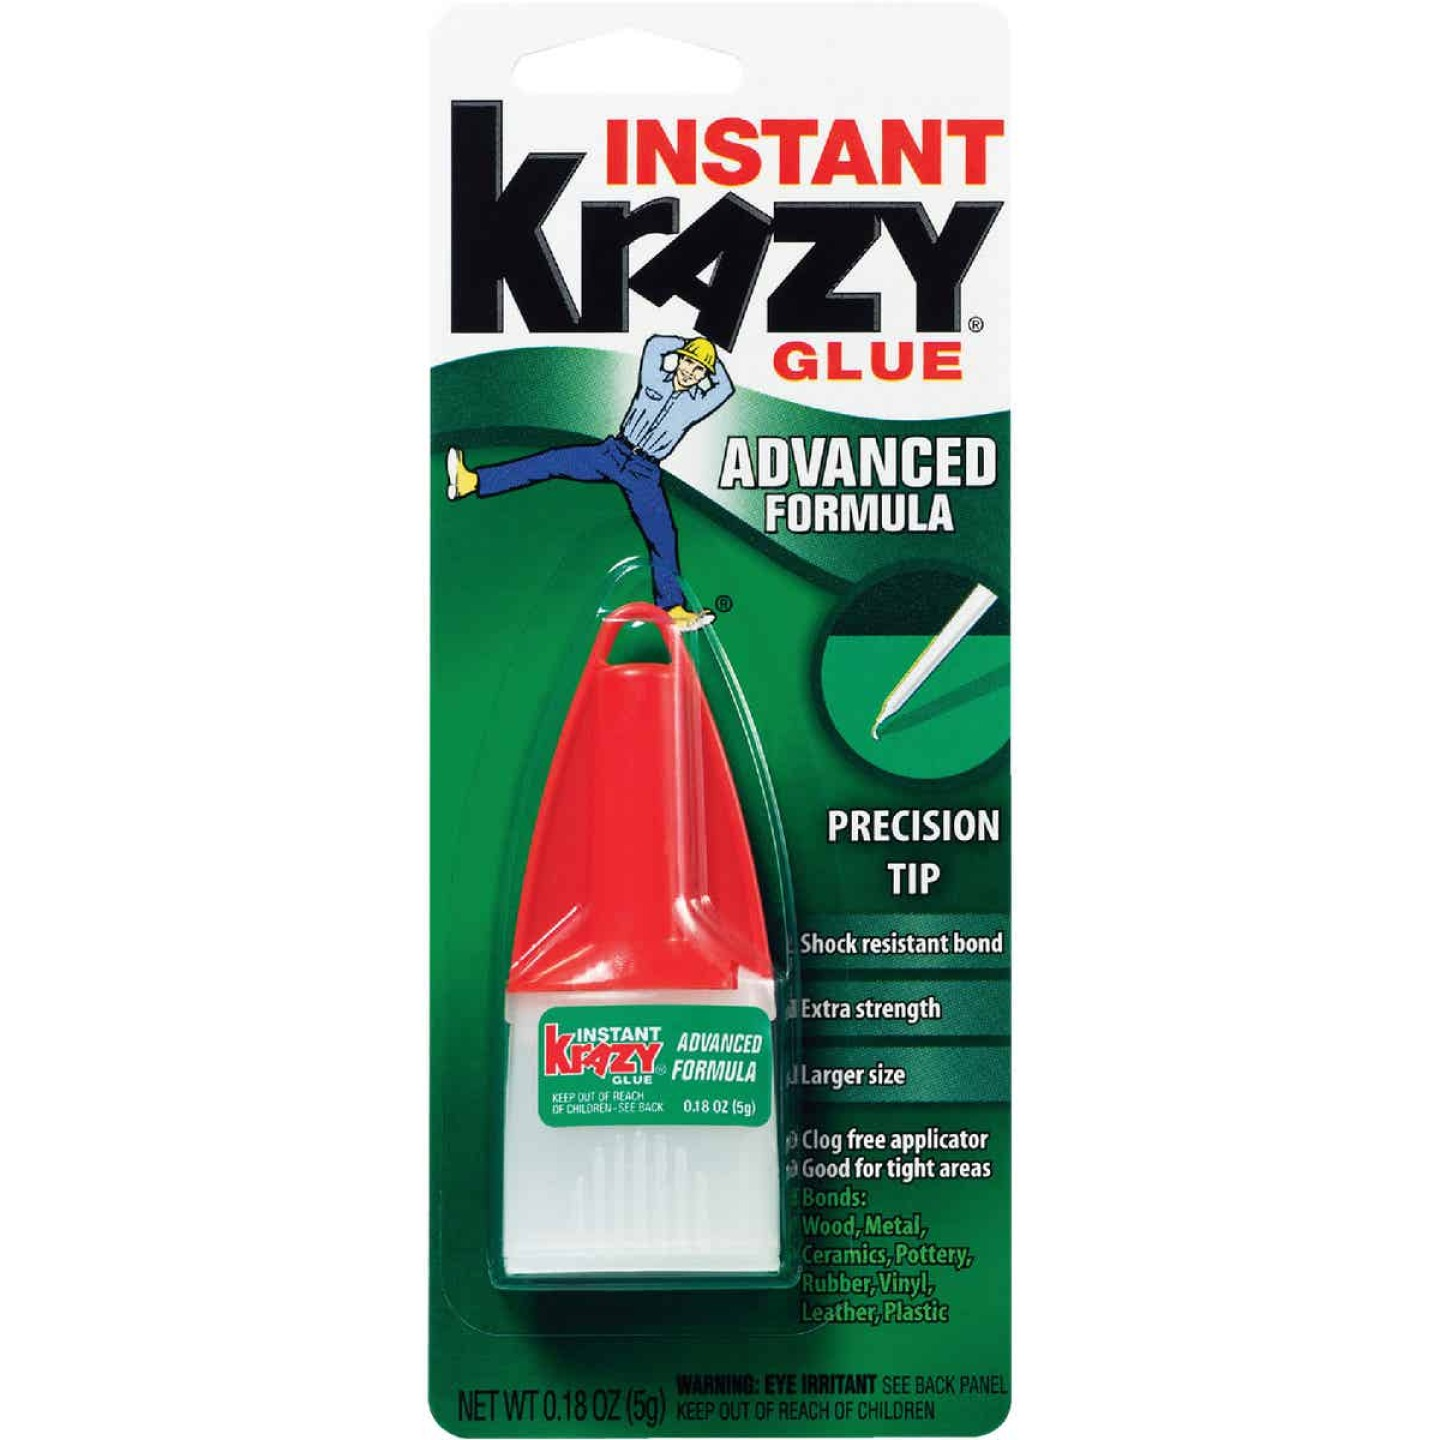 Krazy Glue 0.18 Oz. Liquid Maximum Bond Super Glue with Precision Tip Image 1